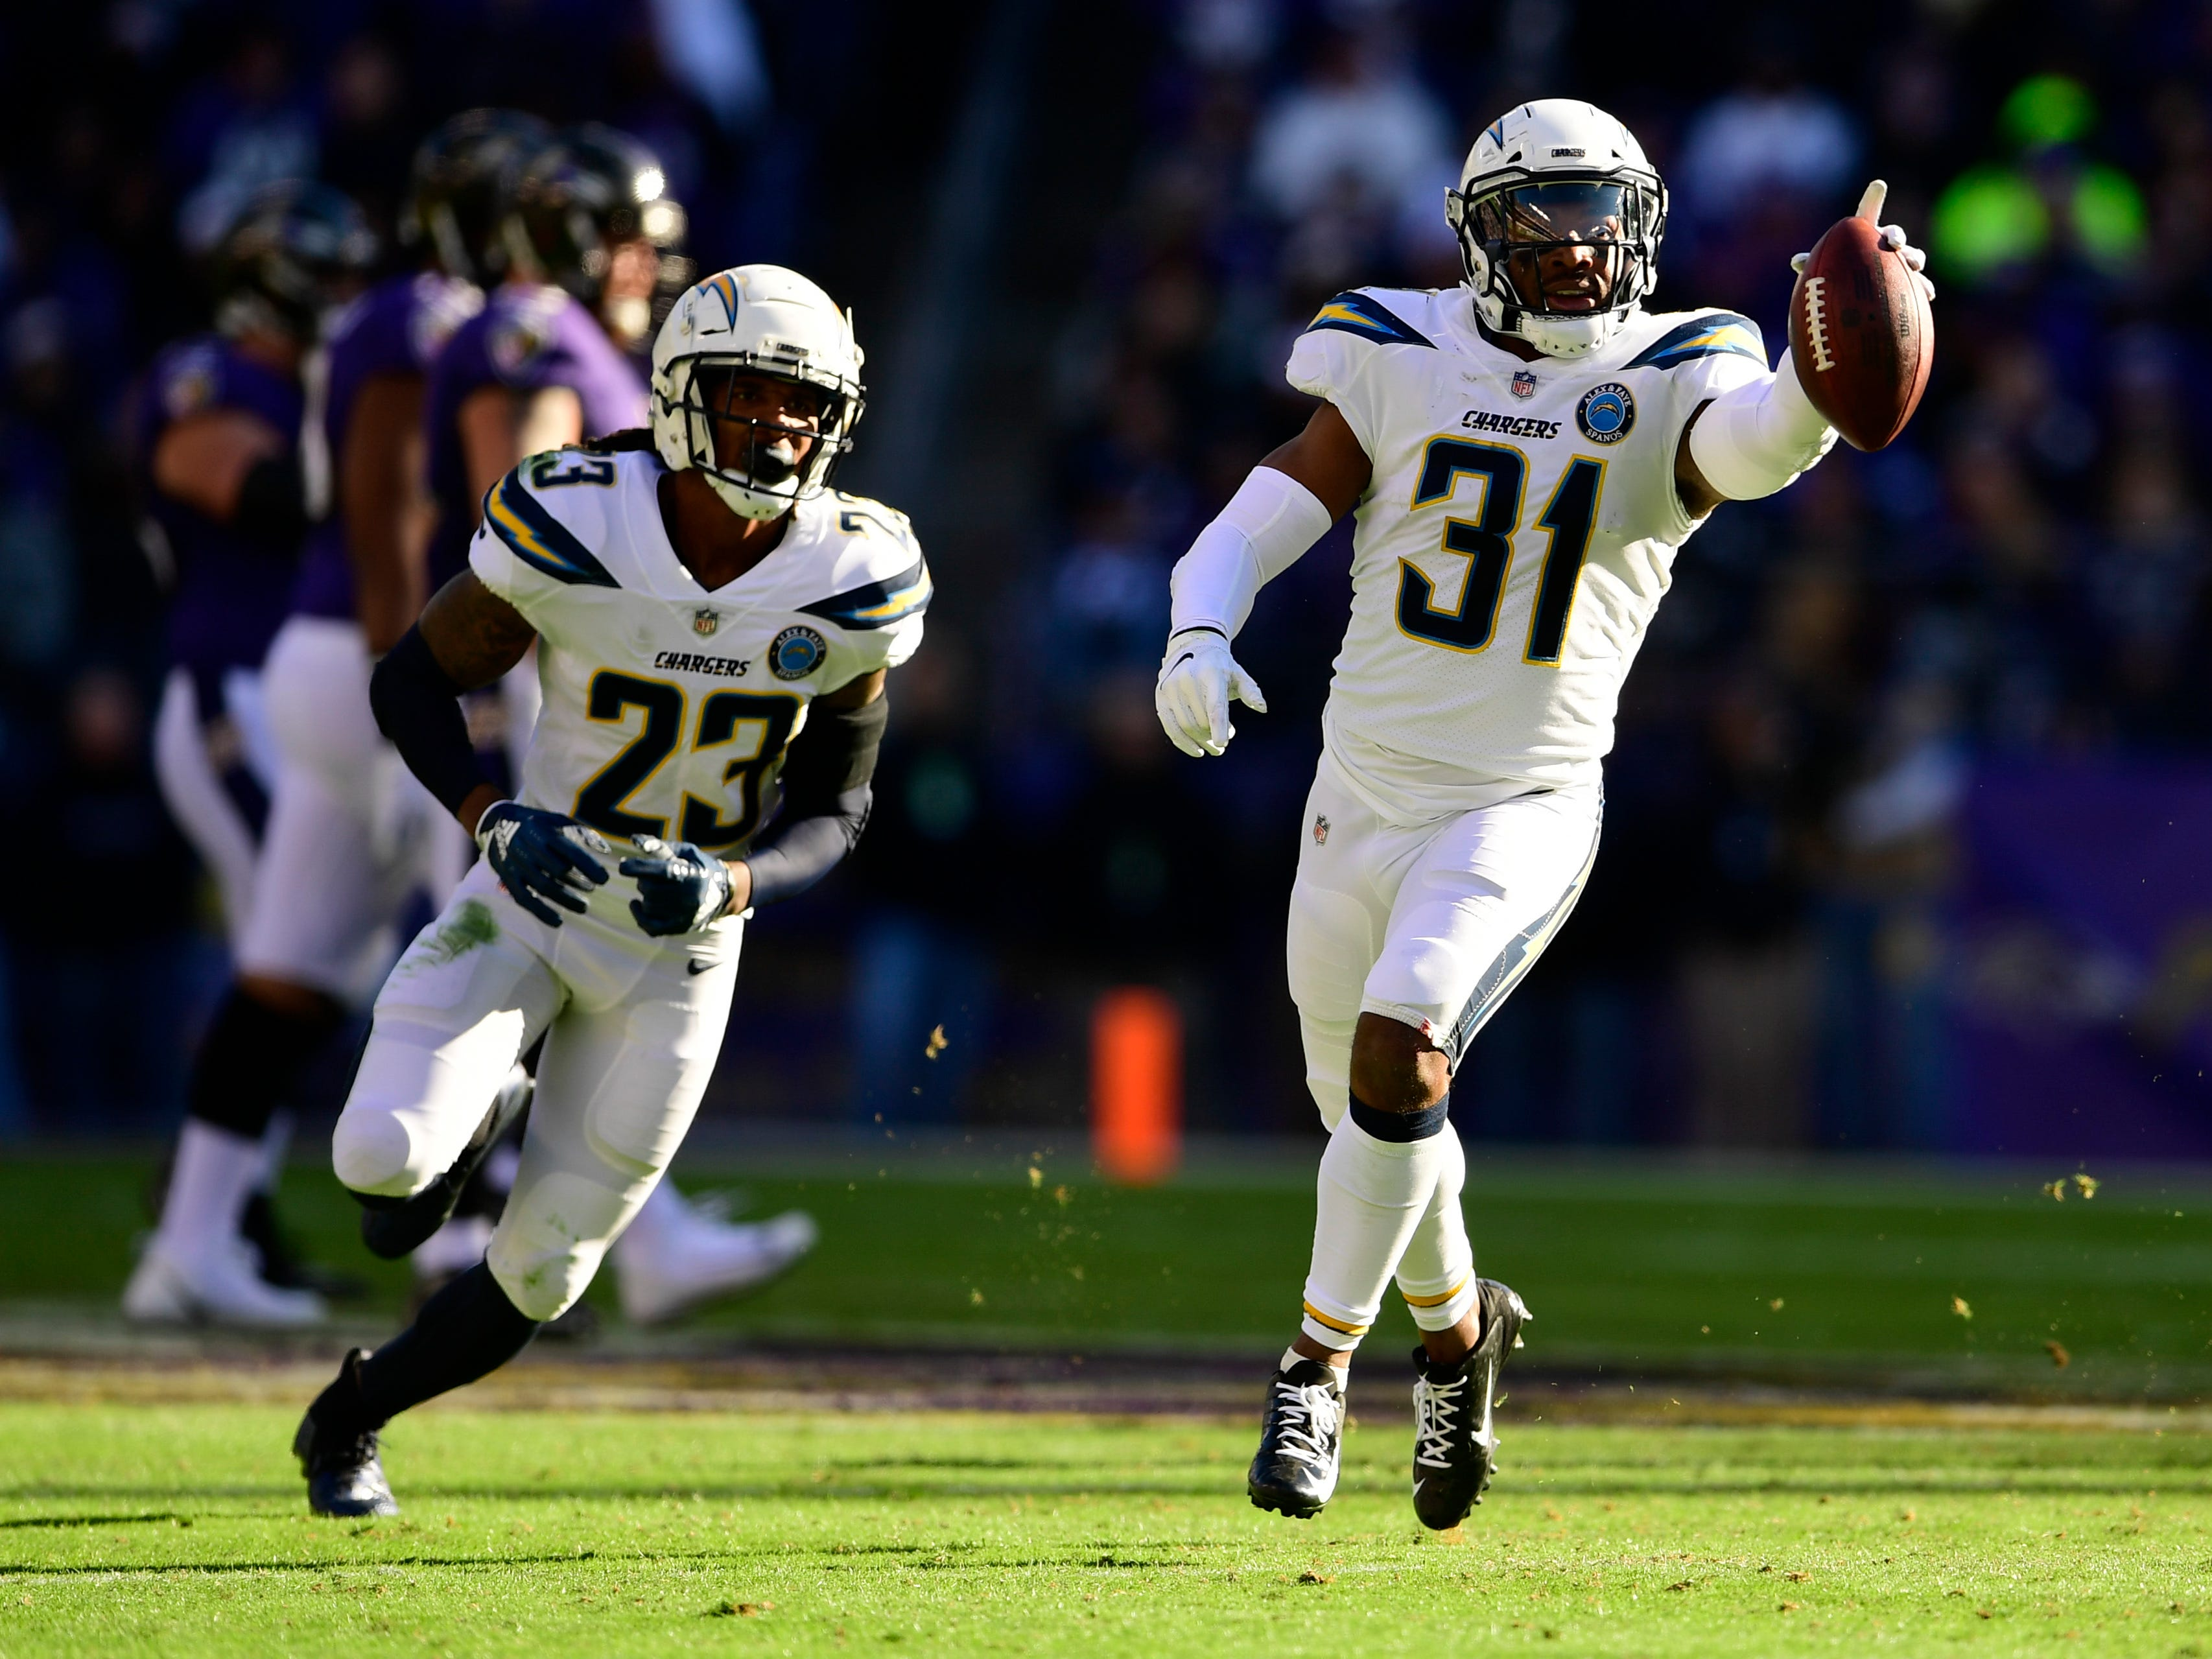 Los Angeles Chargers safety Adrian Phillips (31) reacts after intercepting Baltimore Ravens quarterback Lamar Jackson (not pic tired) during the second quarter in a AFC Wild Card playoff football game at M&T Bank Stadium.